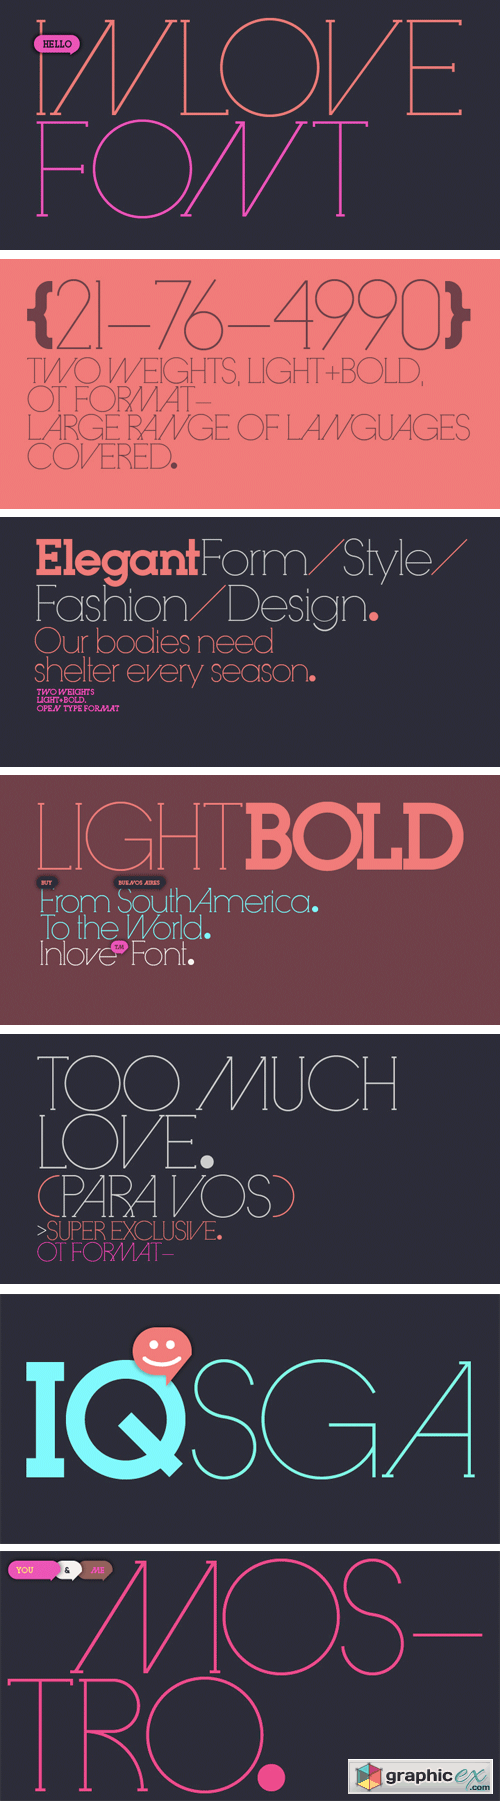 Inlove Font Family - 2 Fonts for $49